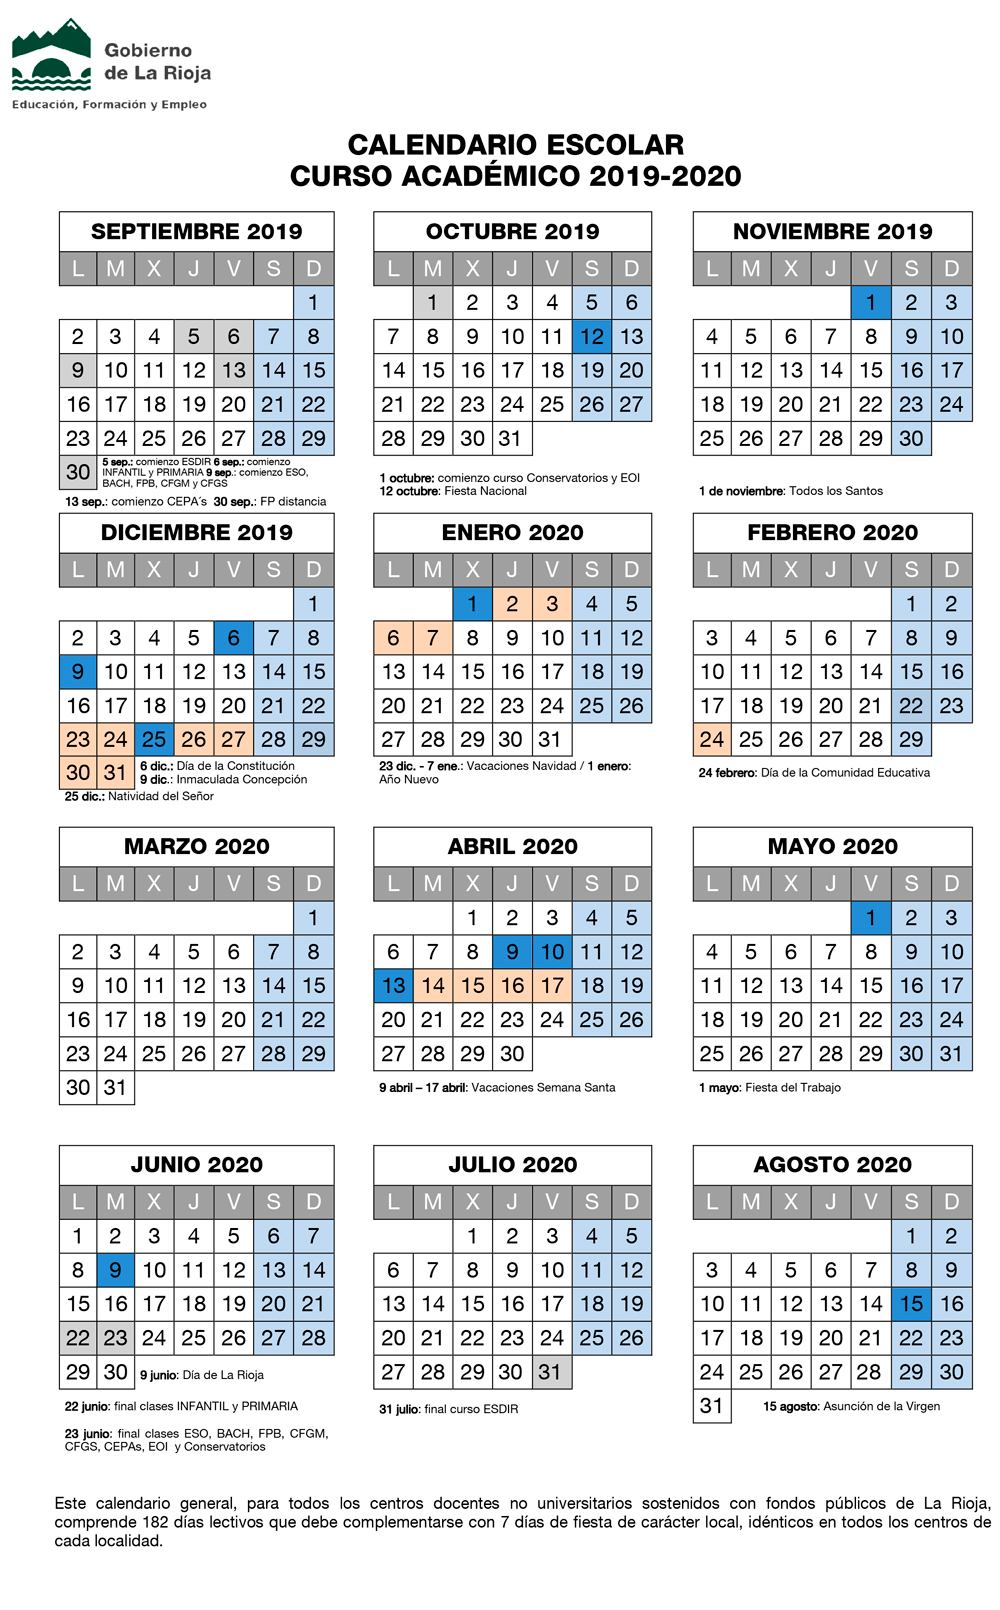 Calendario Escolar Madrid 2020 2019.Calendario E3scolar